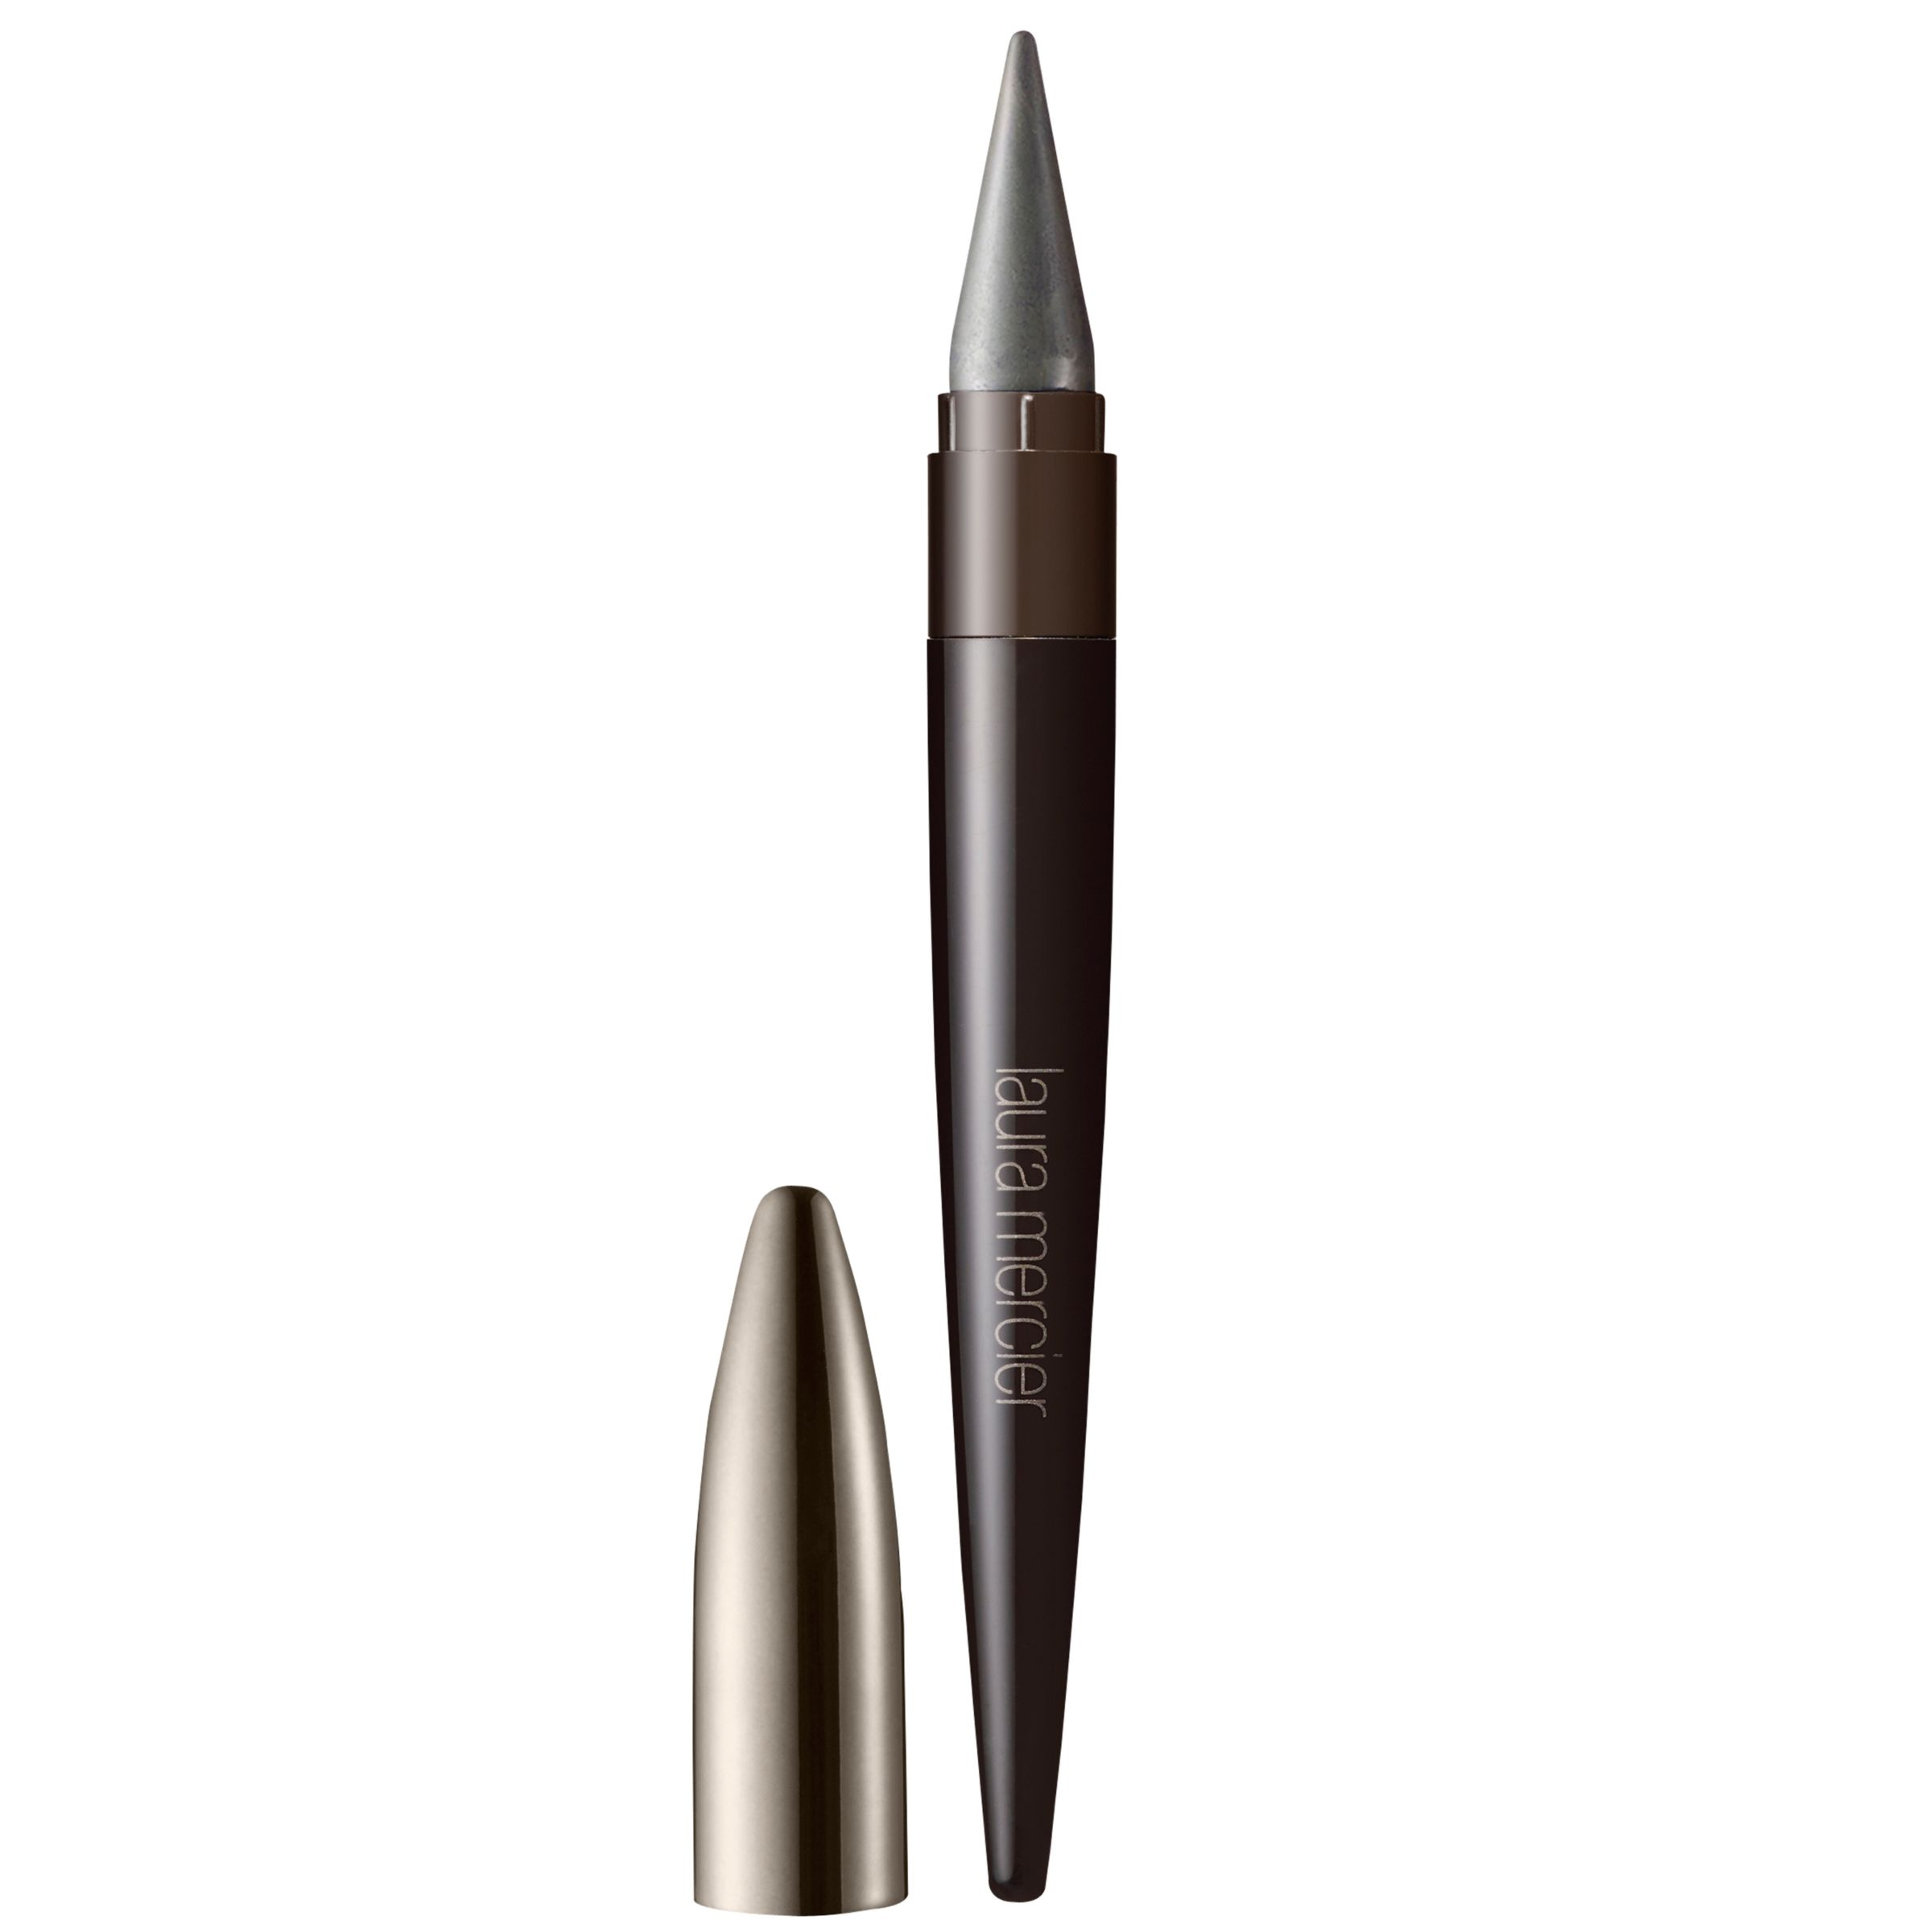 Laura Mercier Laura Mercier Kajal D'Orient Eye Liner